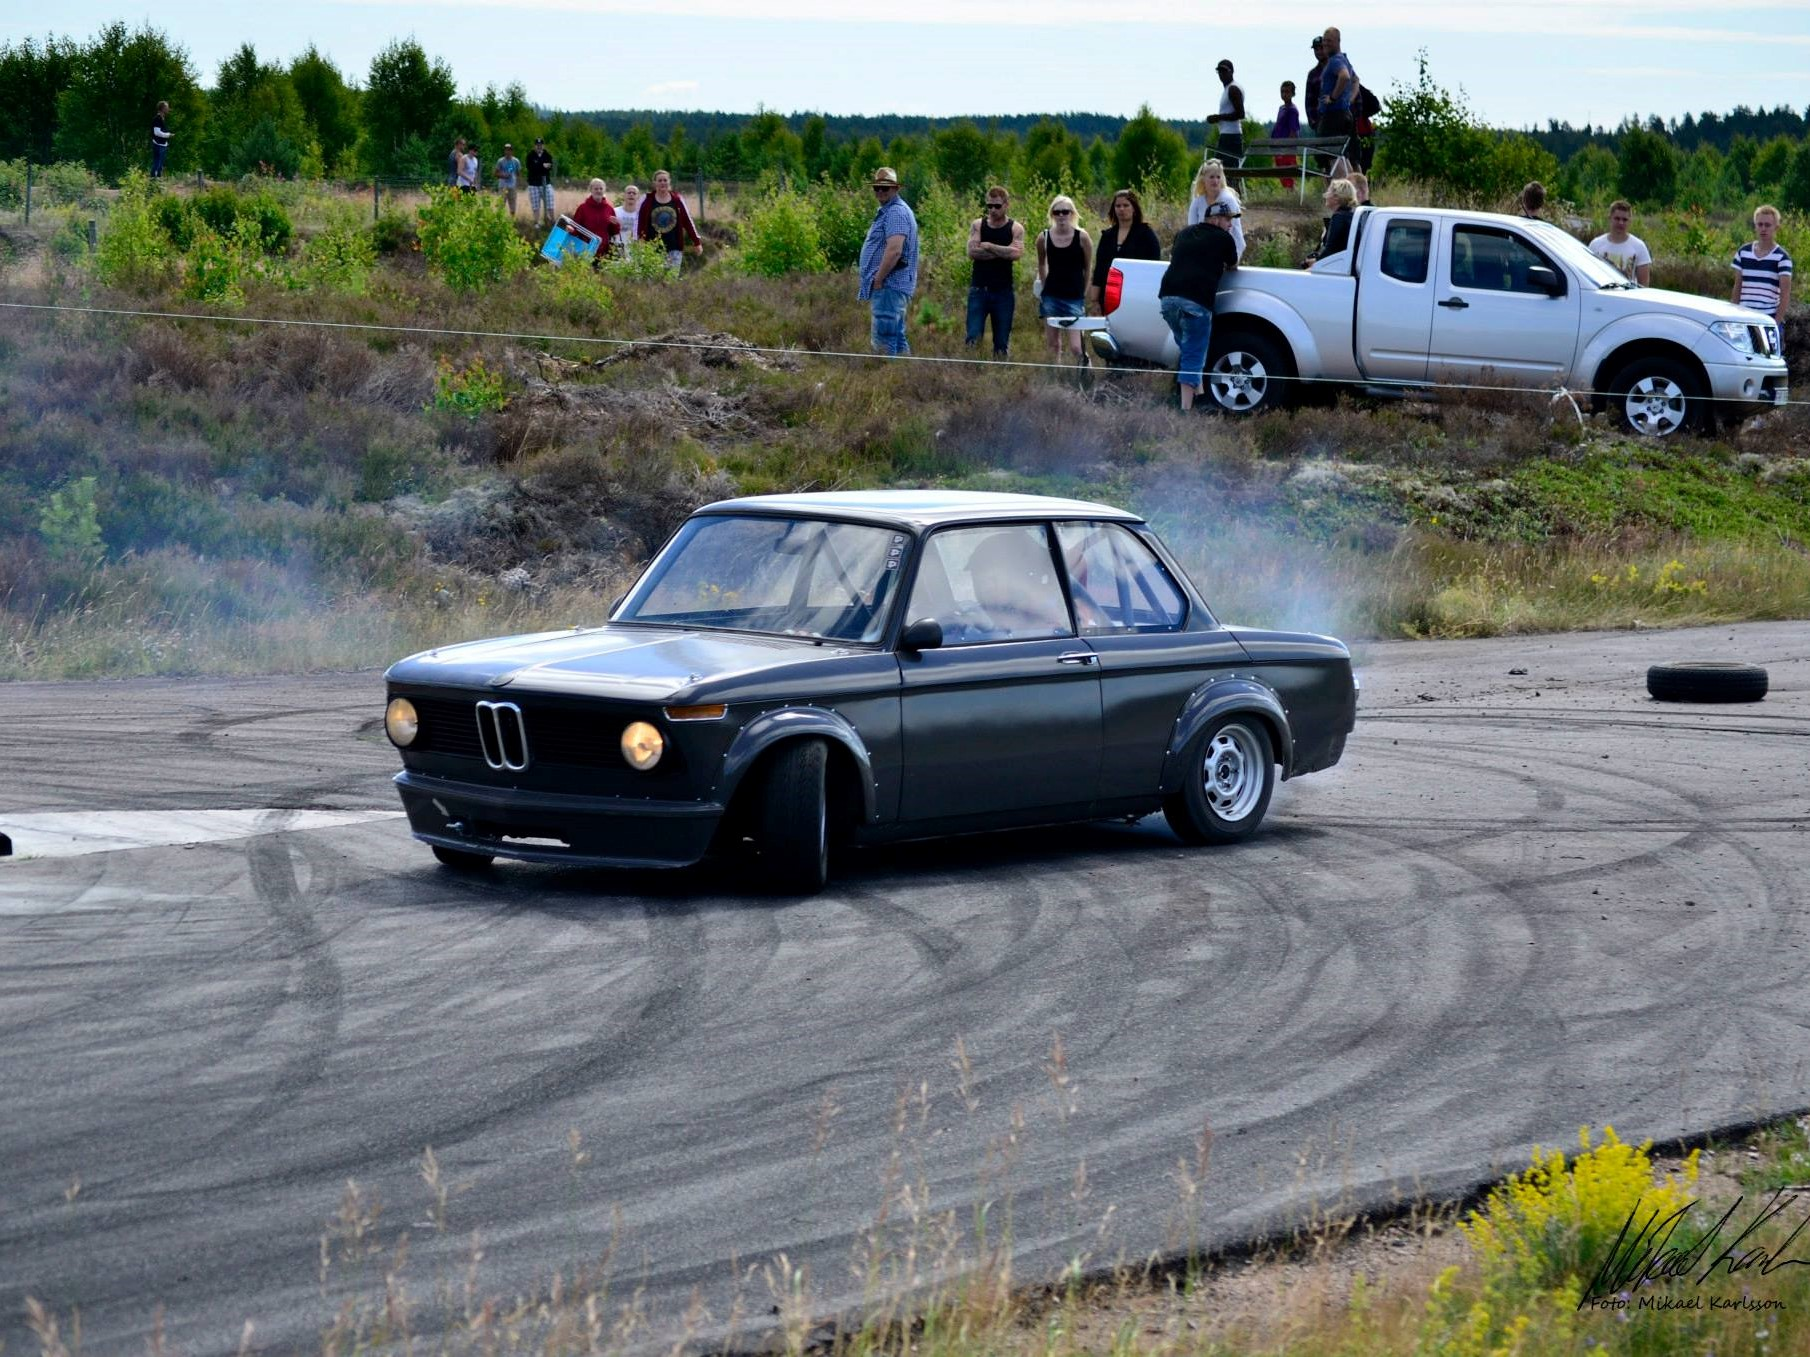 Hultsfred drifttrack2